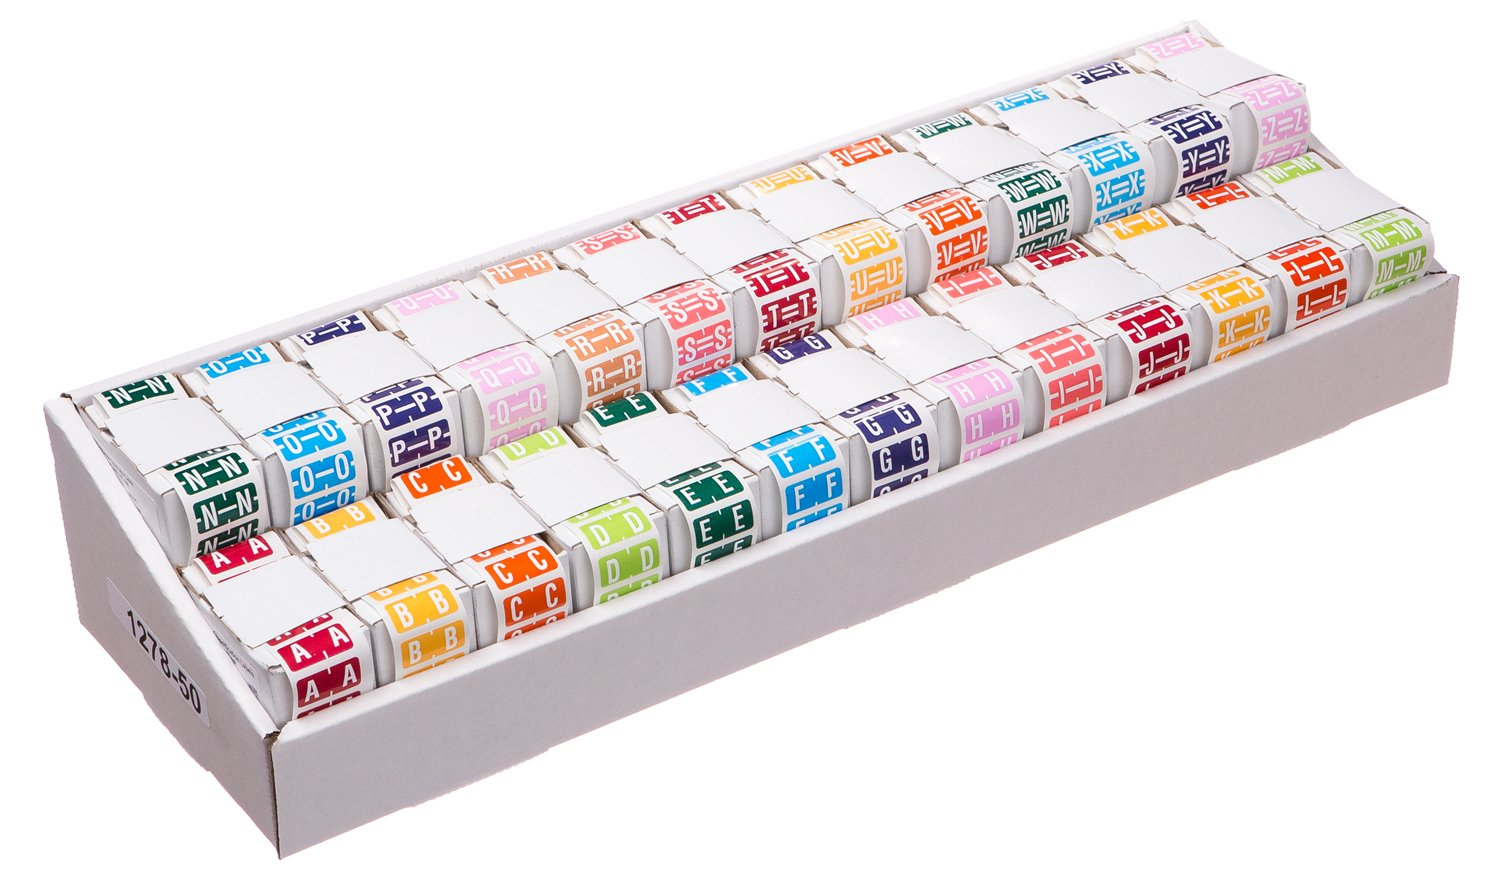 TAB Color-Coded Alphabetic Label Rolls, A-Z Full Set, 1/2'', 26 - 500 Label Rolls/Box